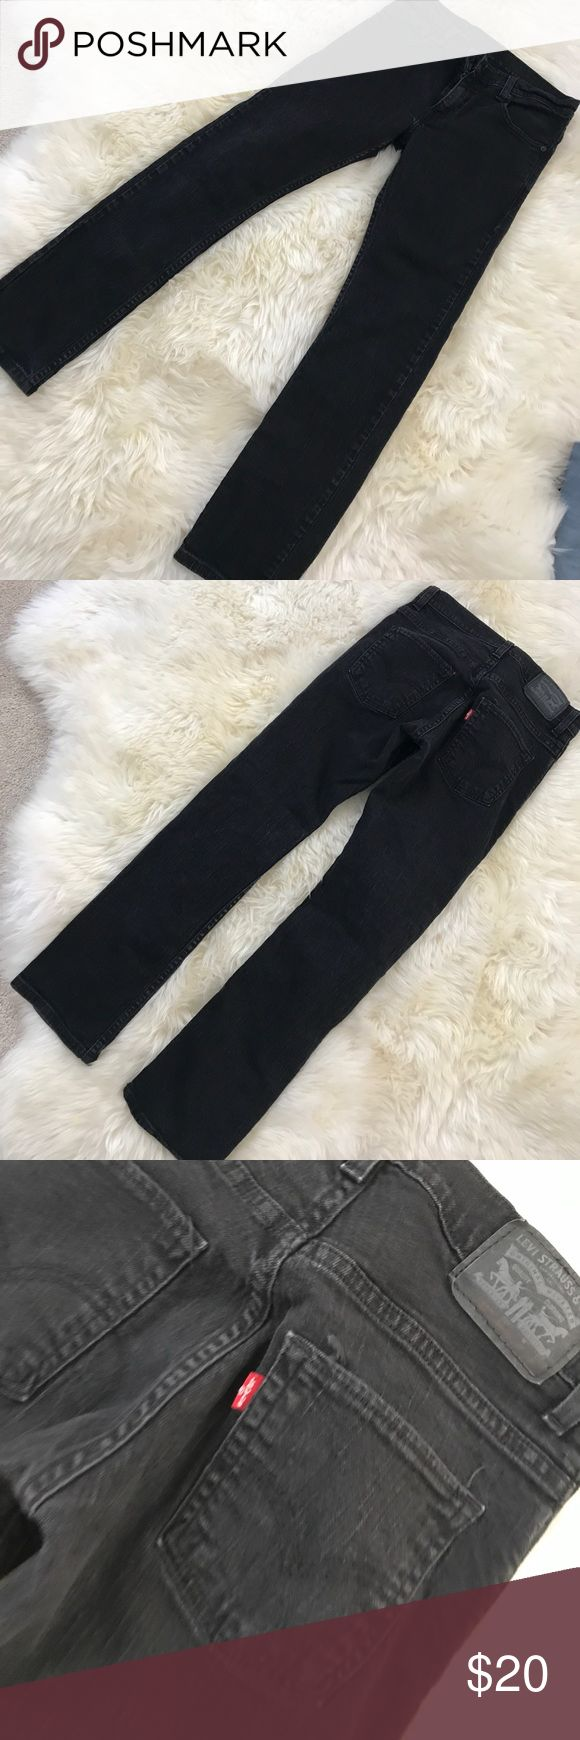 FINAL PRICE❤️Boys Levi's jeans Black 511 Levi's Skinny stretch jeans with distressed look. My son wont wear jeans so I know these have not been worn but the have to look of wear im guessing from the stretch kind of material. I posted a pic of how the jeans look in last pic, I guarantee thats the way I bought them. Ive manage to get him to try on jeans but he will not wear them.📦SAME DAY SHIPPING 🎁FREE GIFT WITH ALL FULL PRICE ORDERS (offers excluded) Levi's Bottoms Jeans